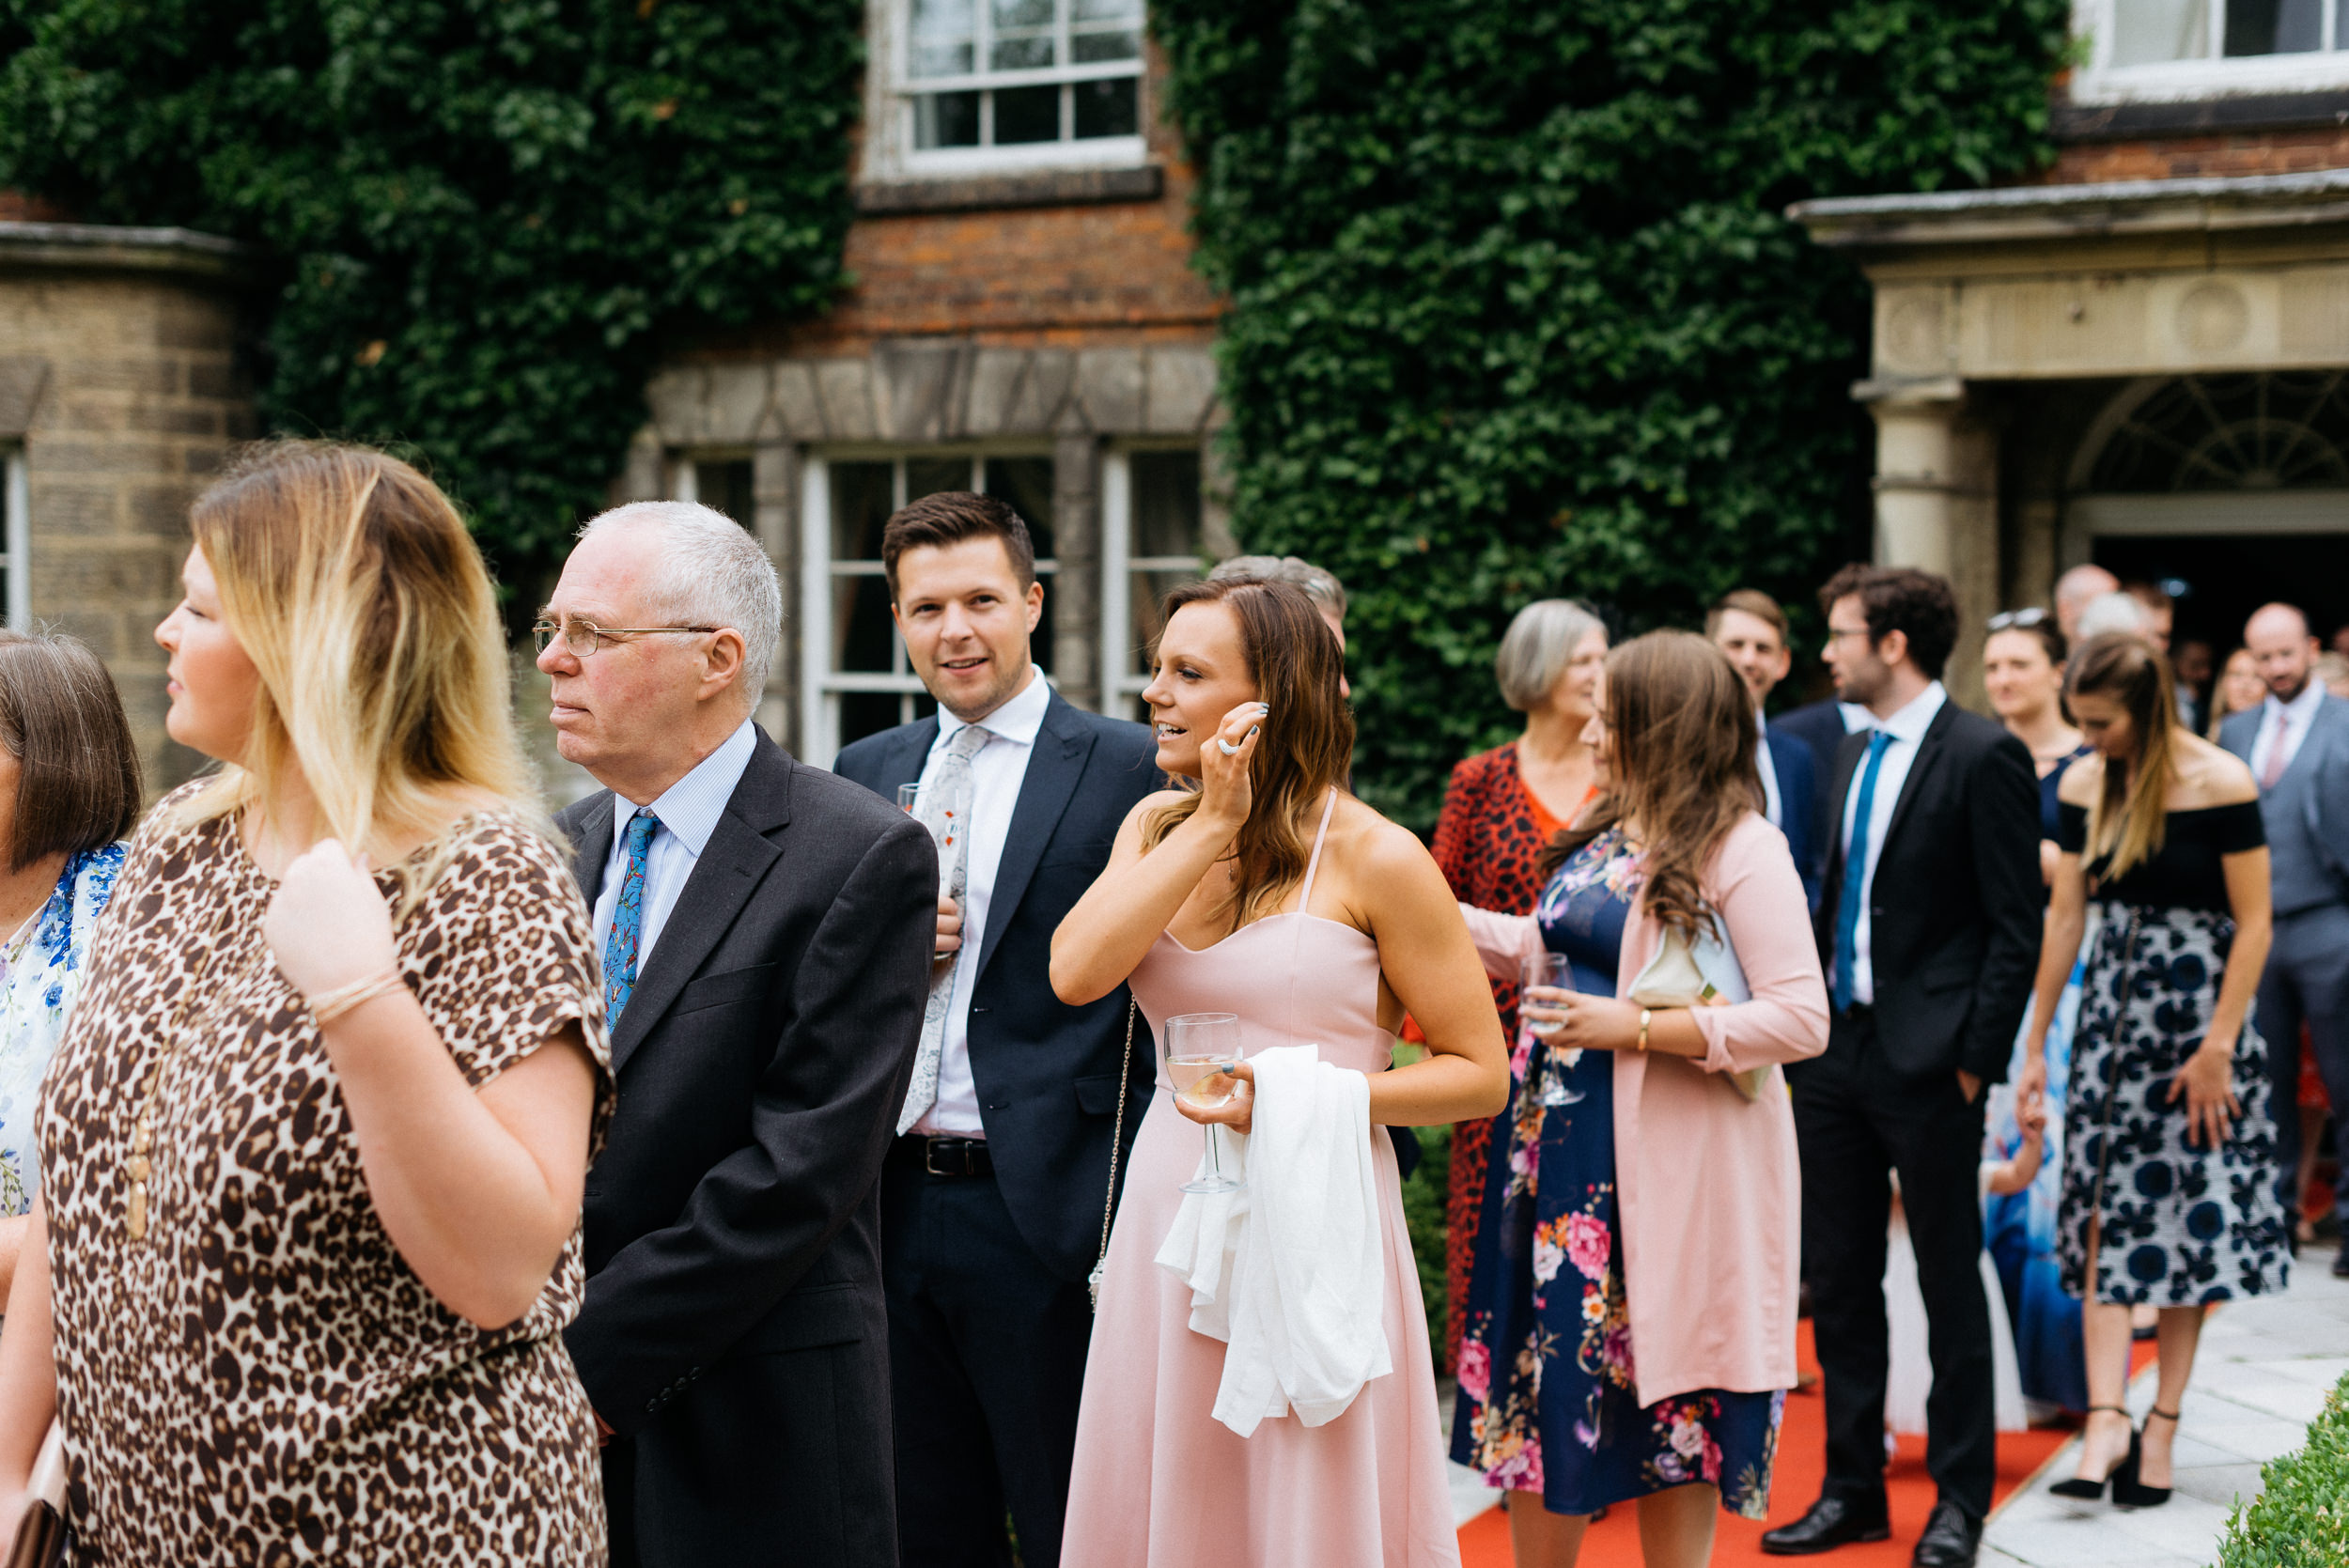 Wedding guests at Risley Hall